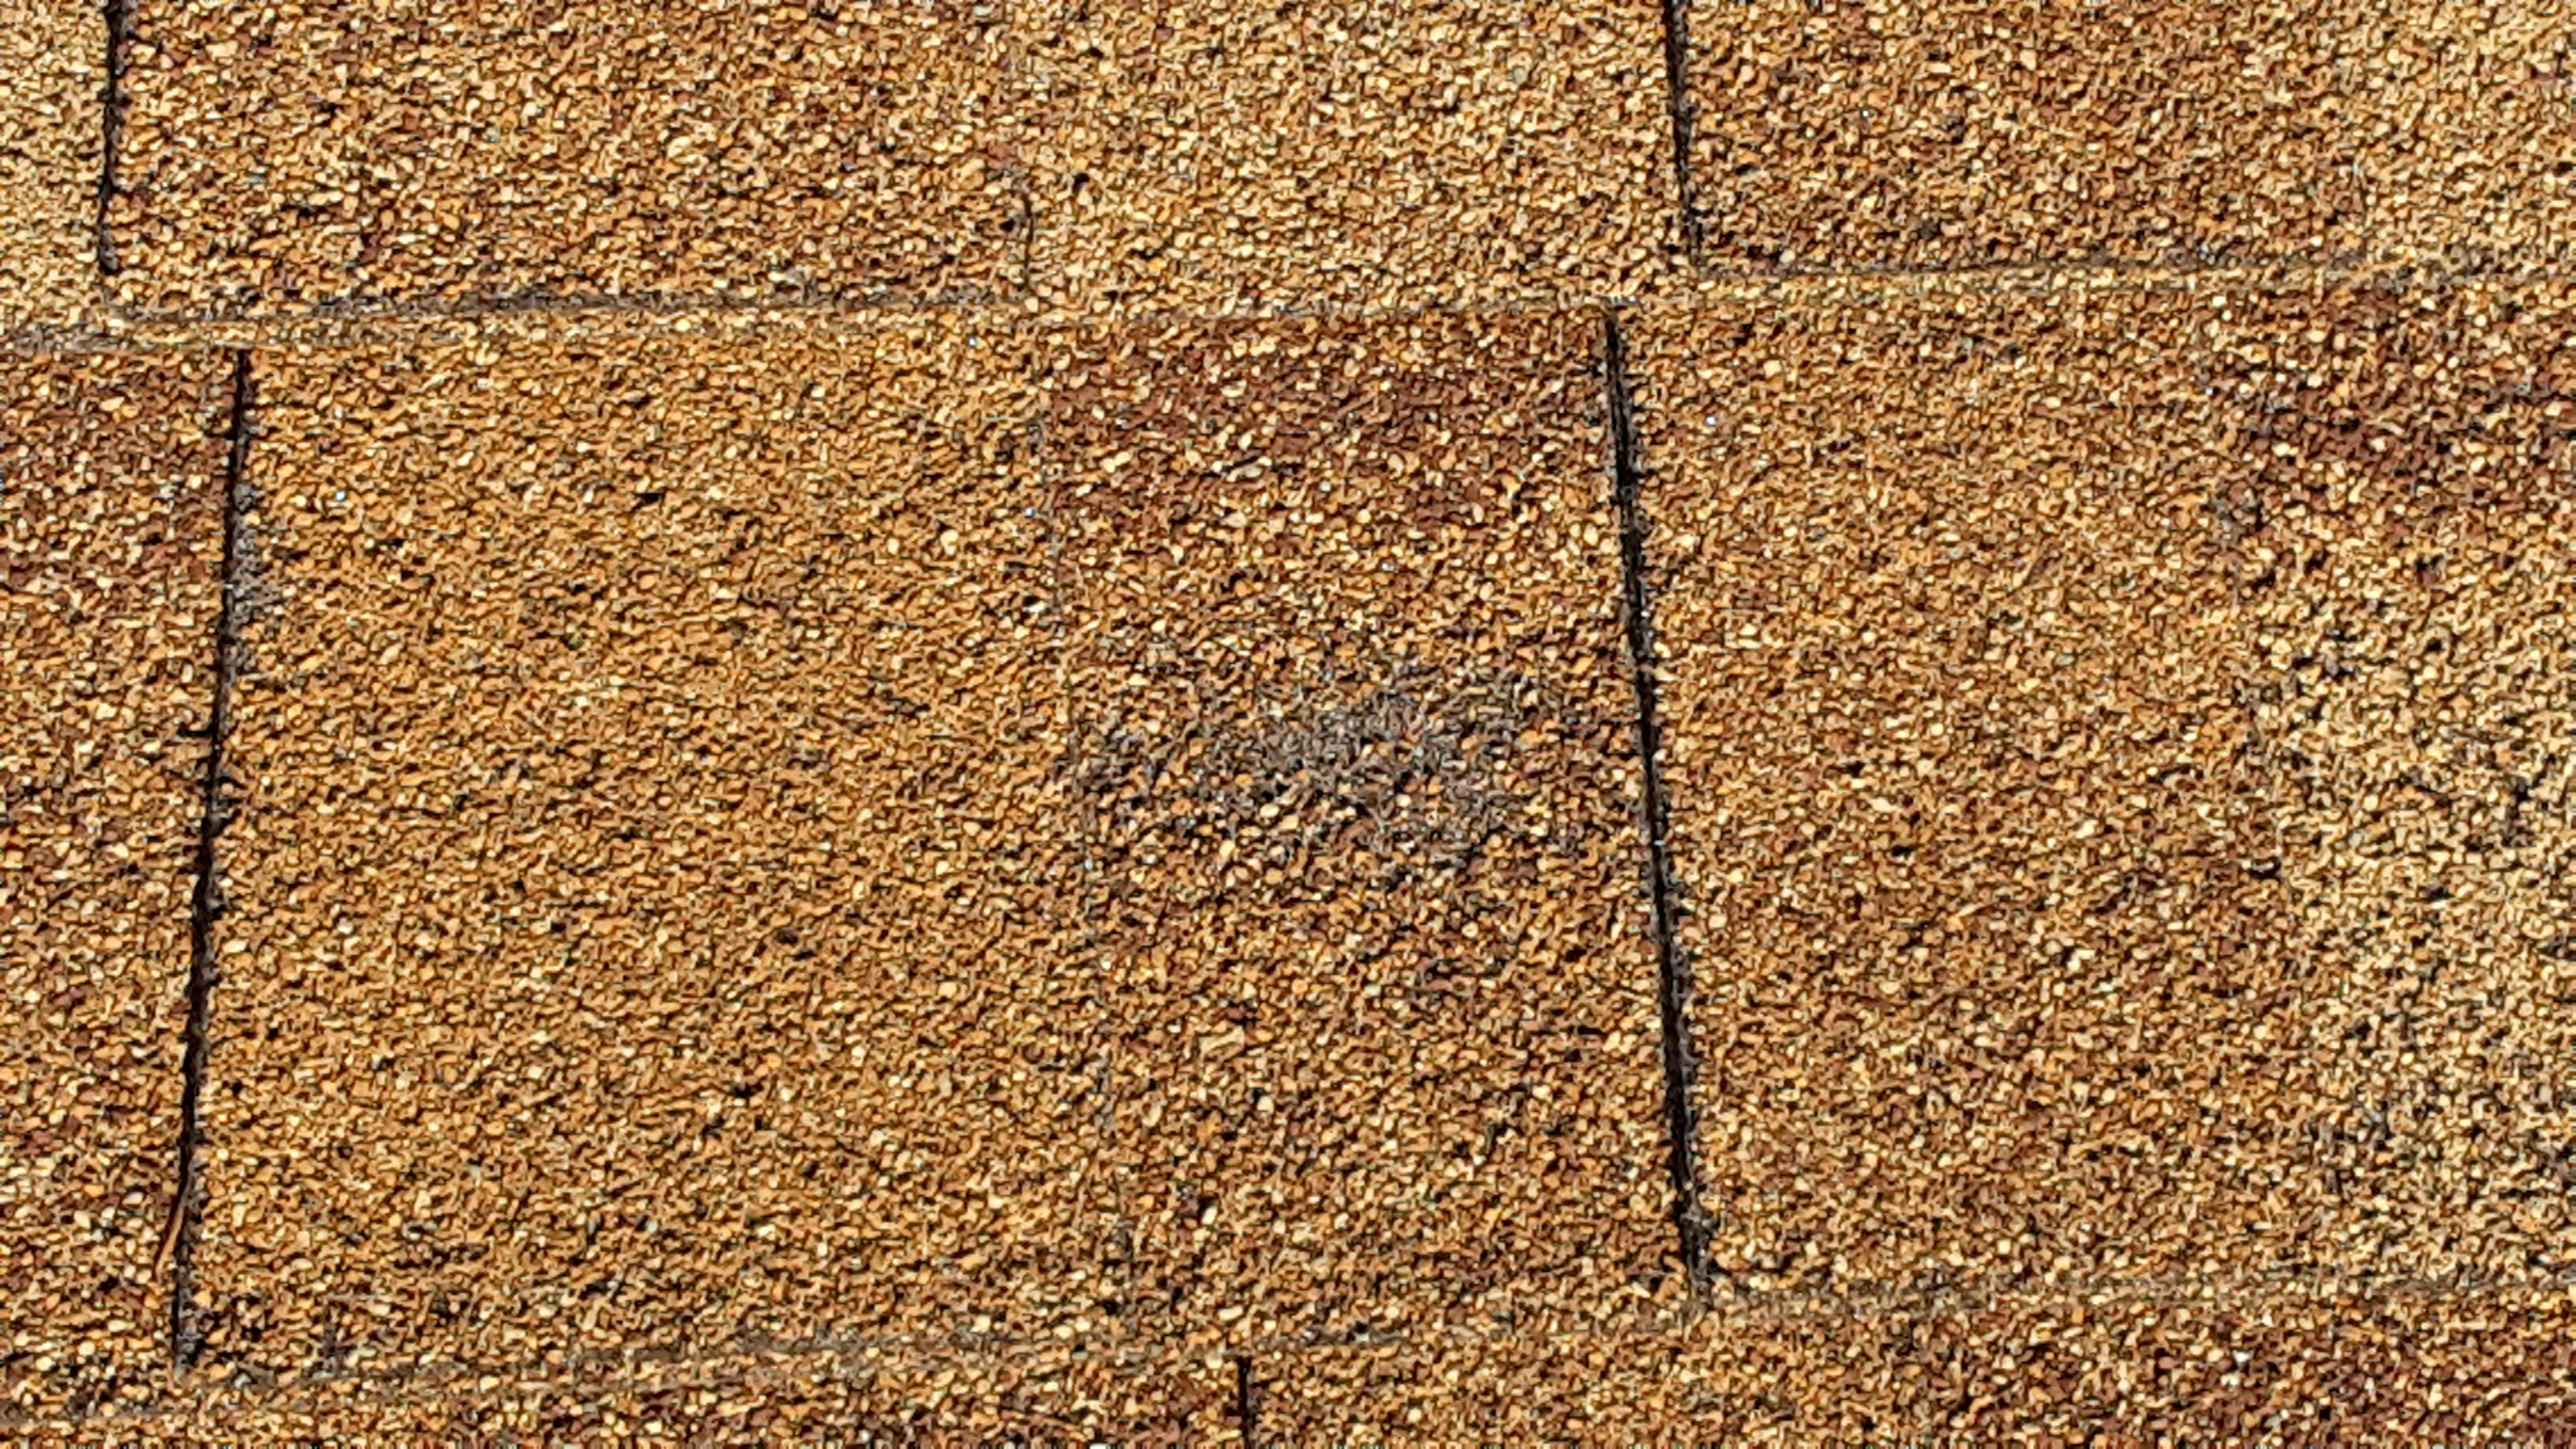 Hail damage on a residential roof